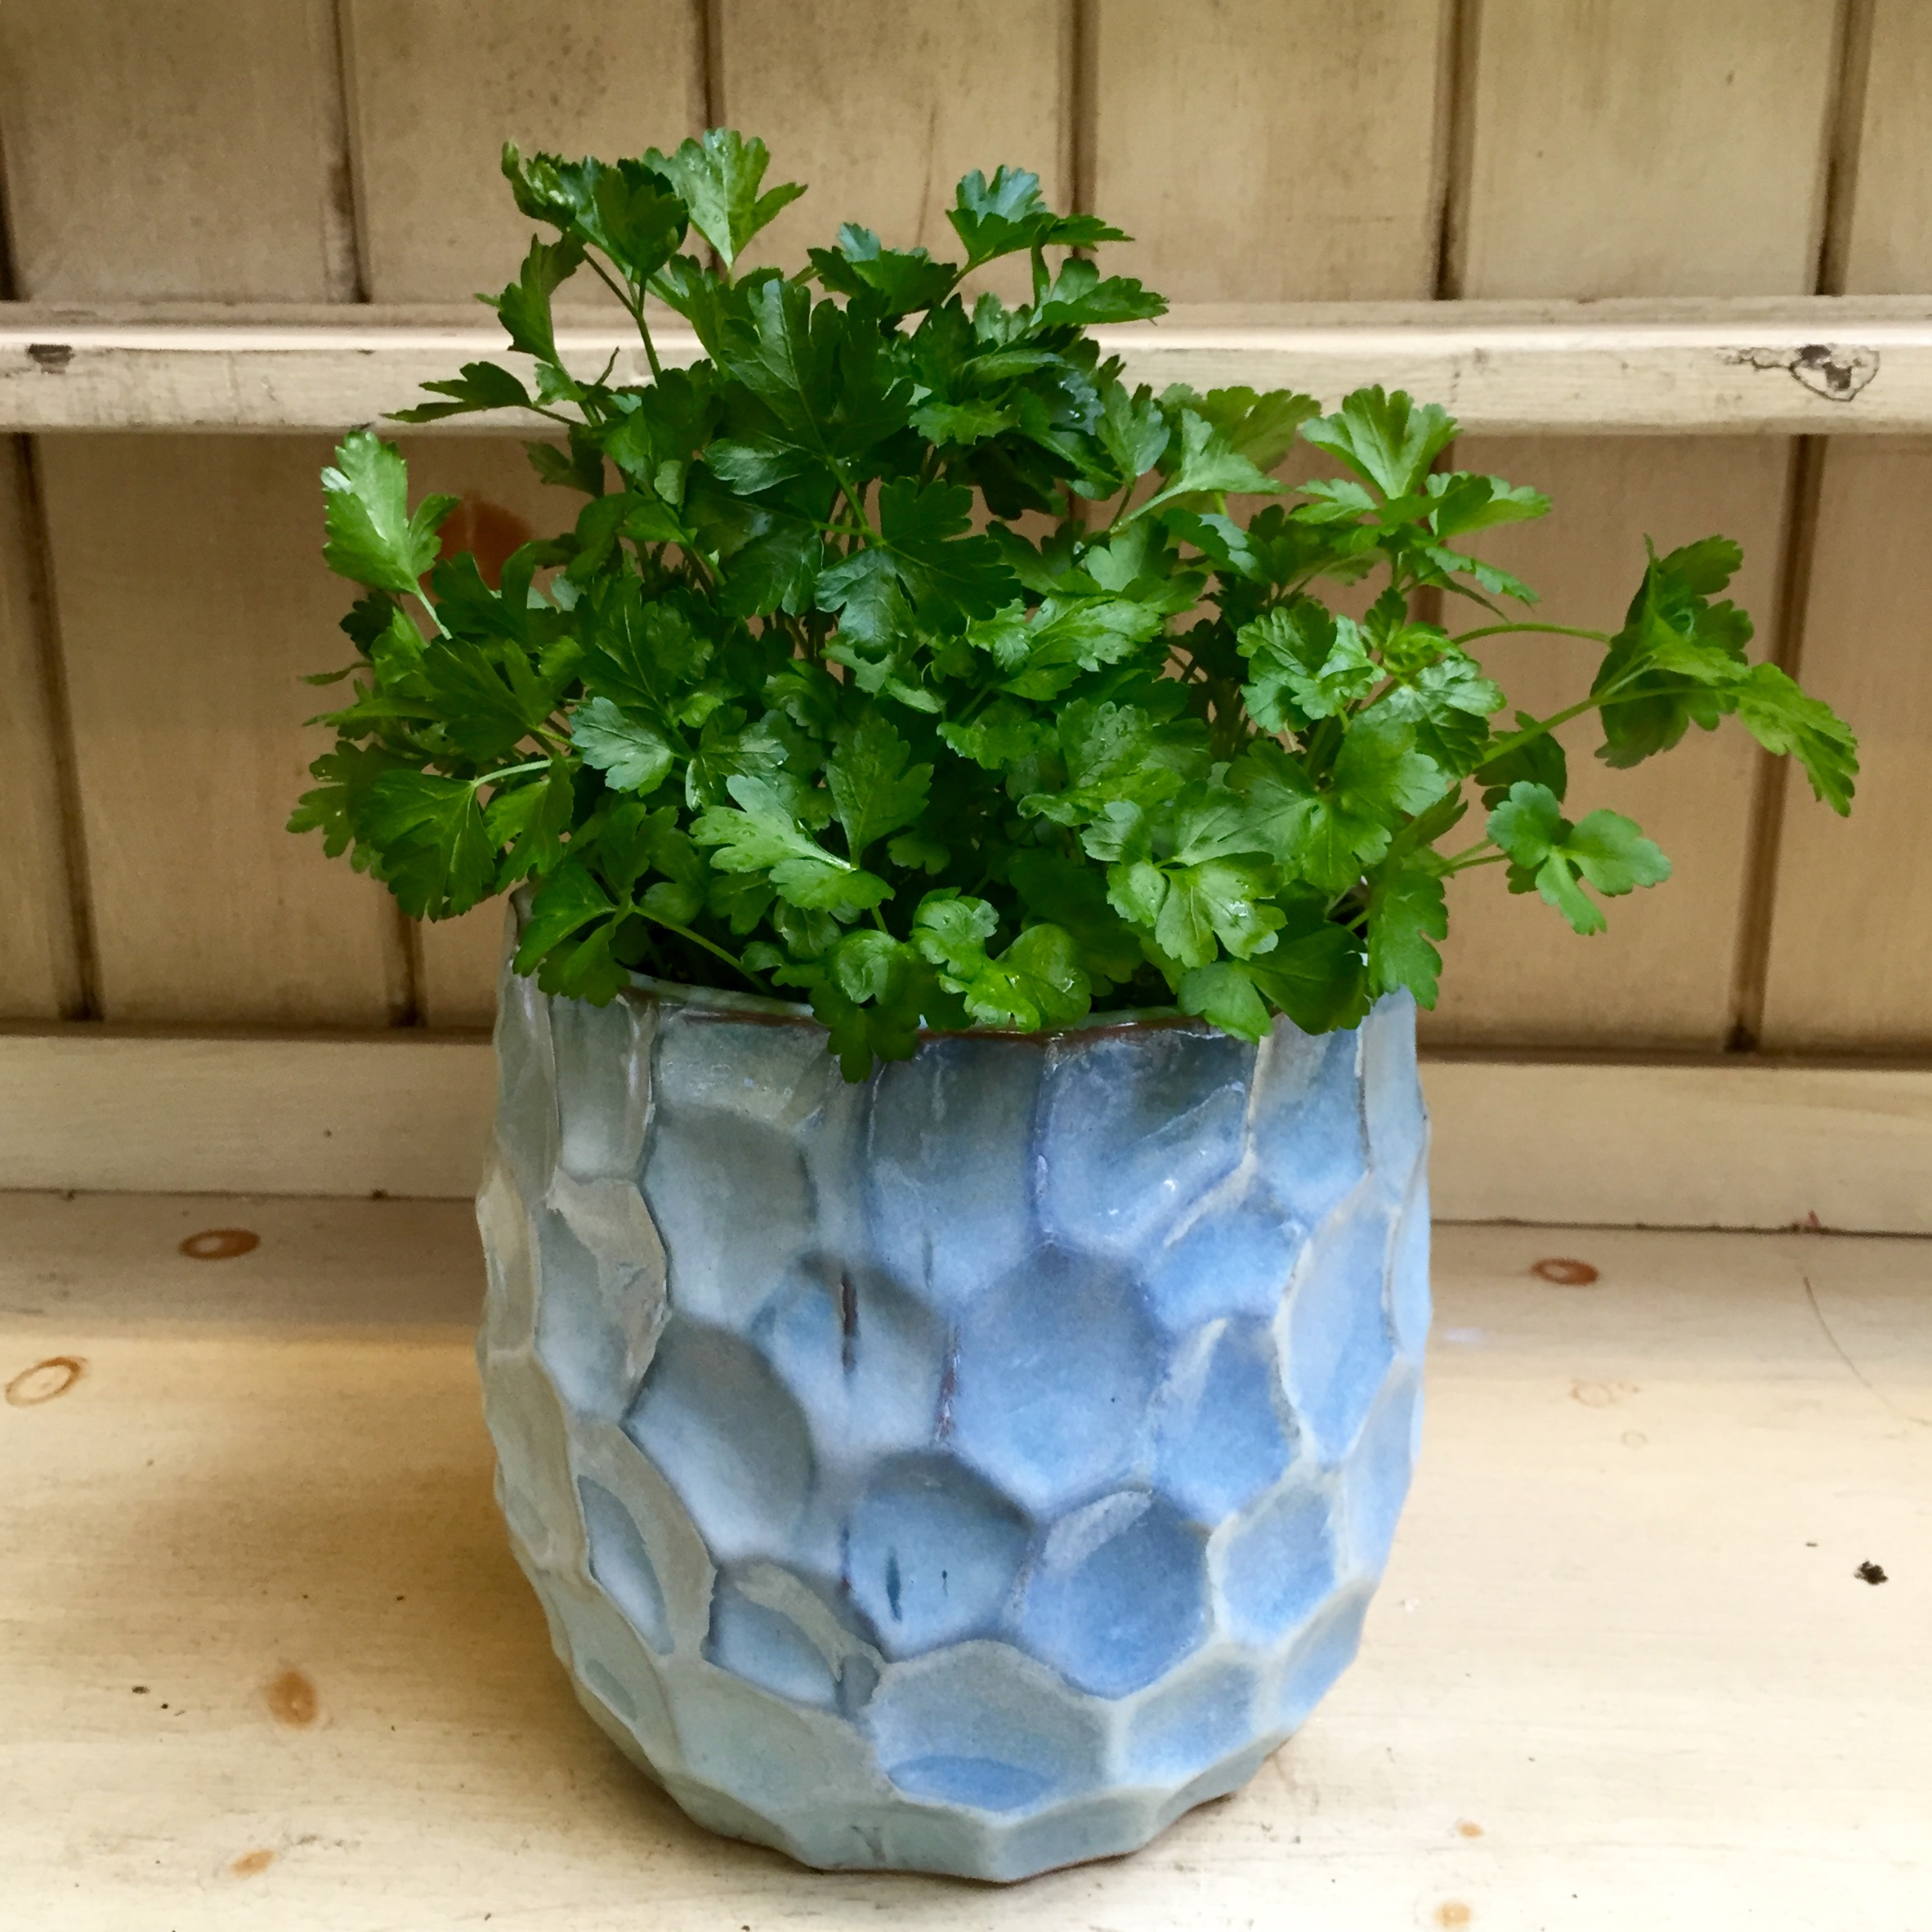 Pictured: Flat Italian Parsley